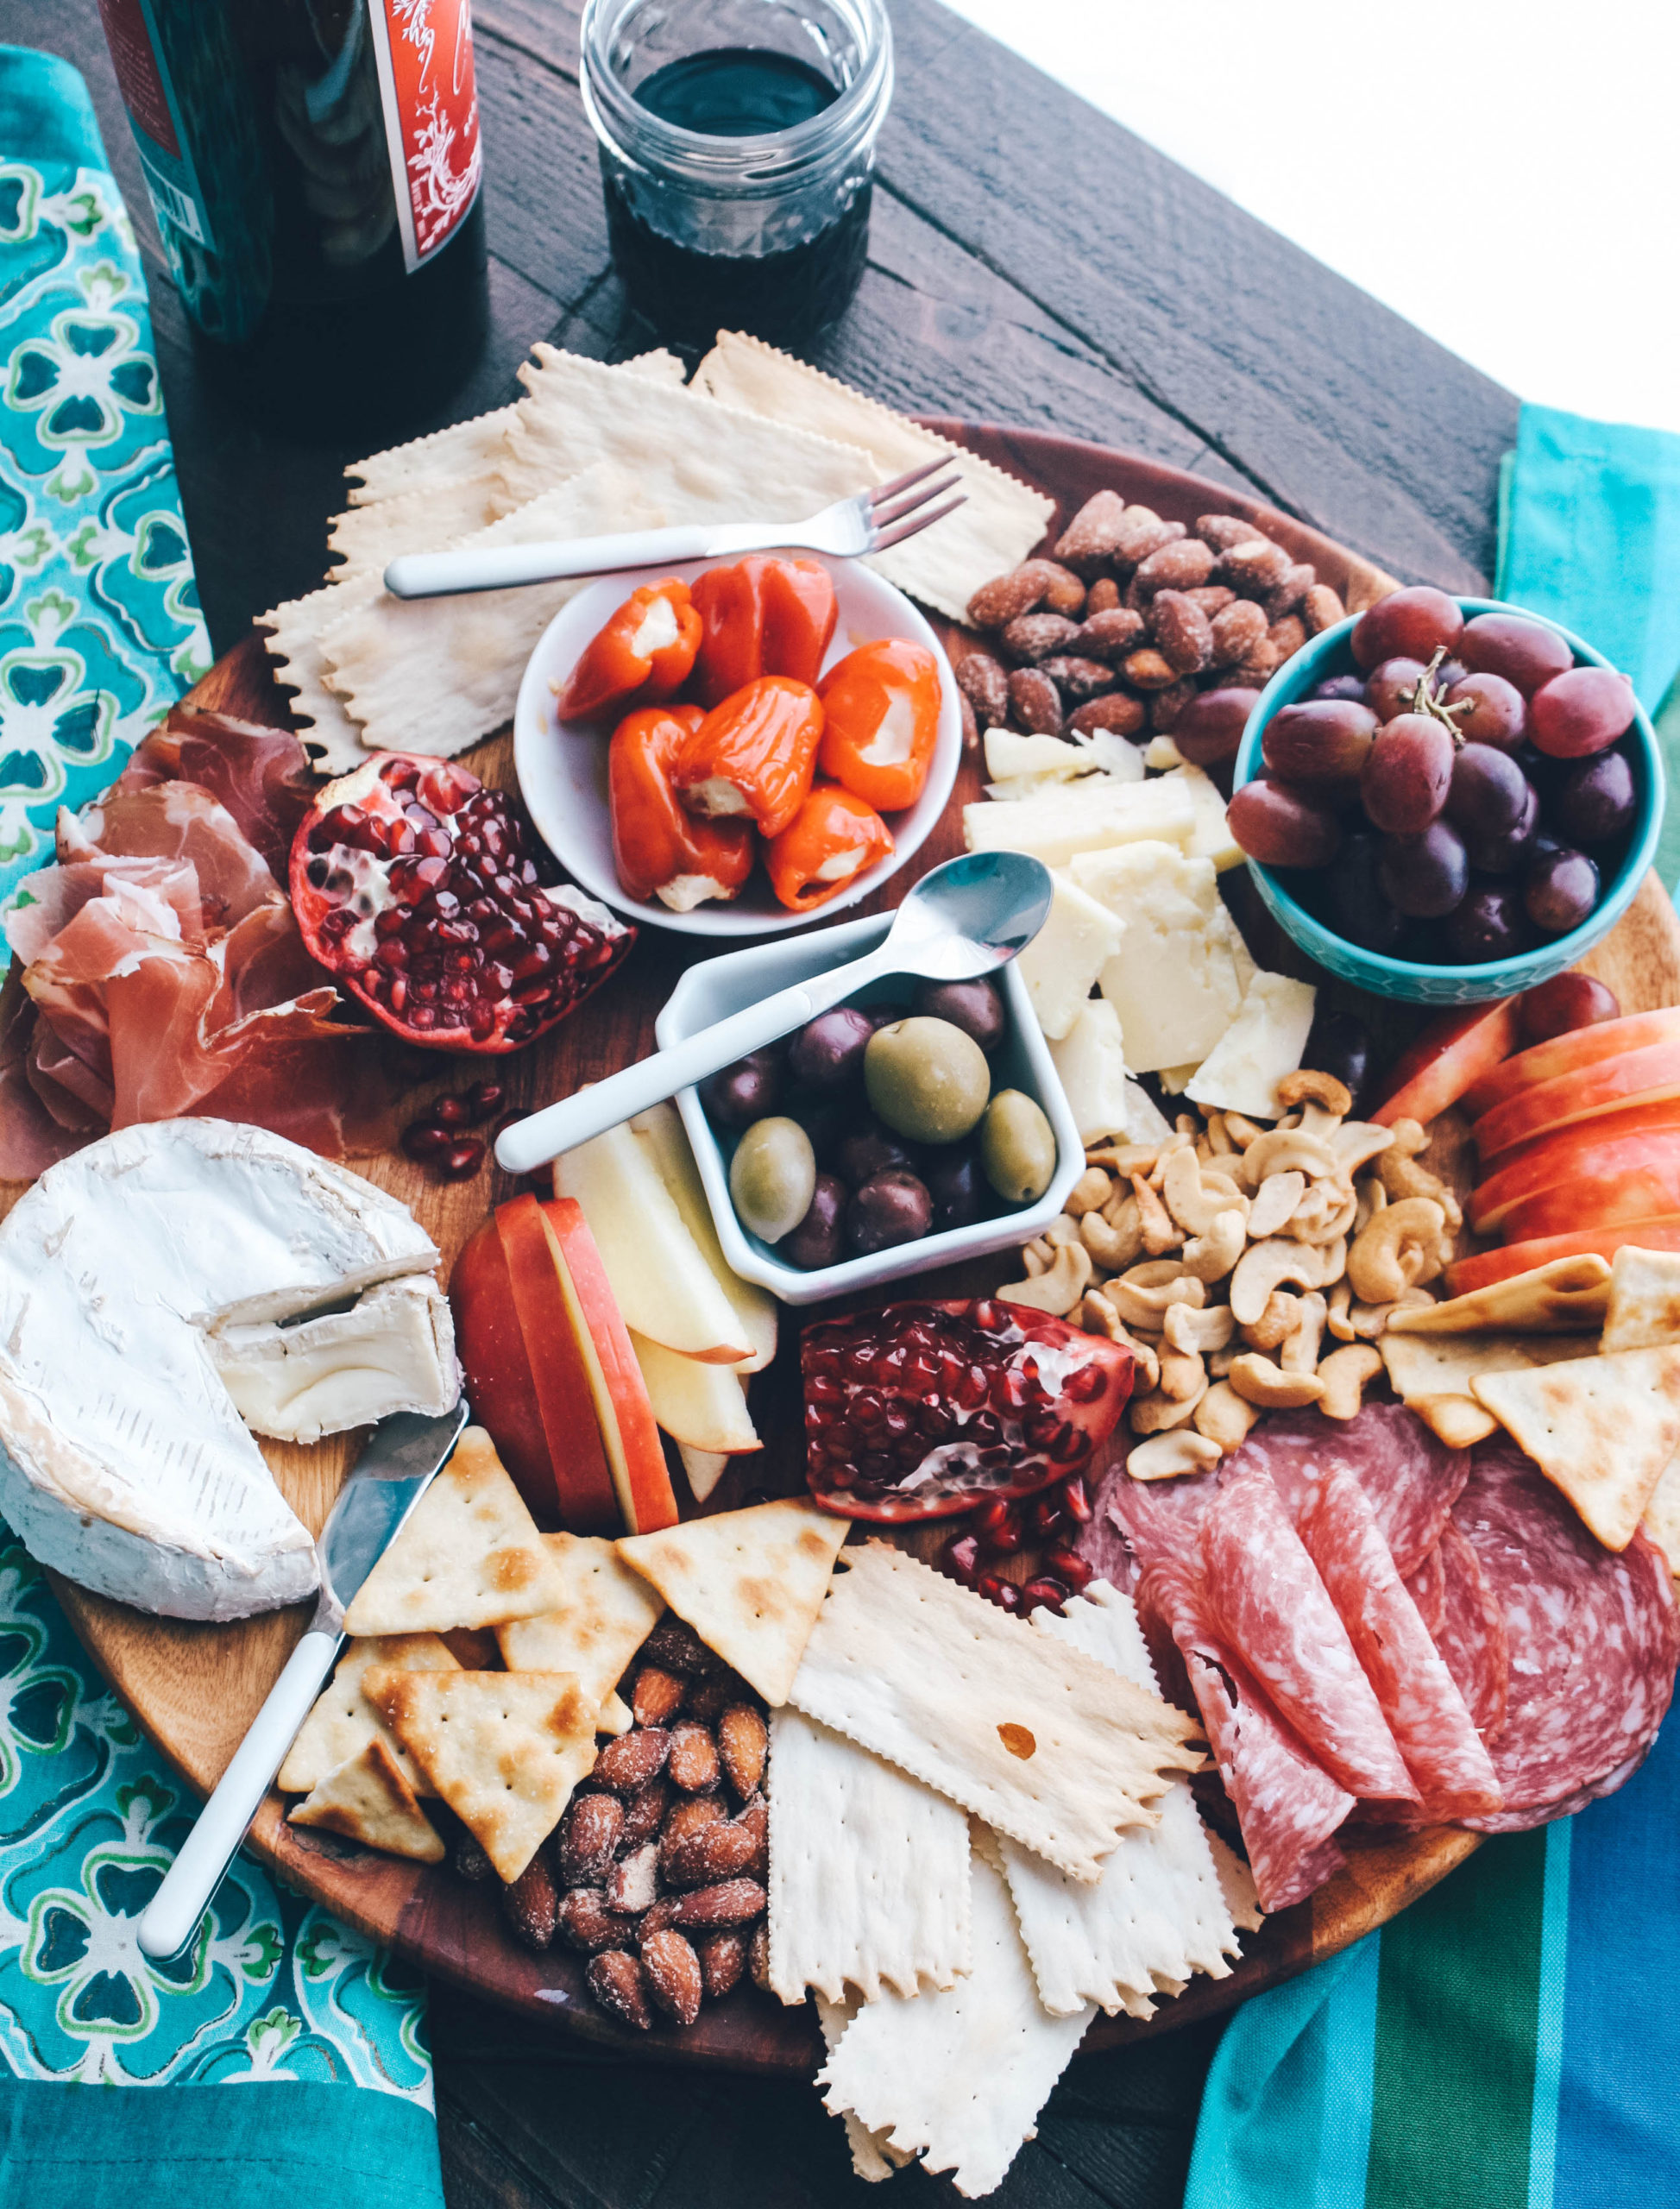 Let me show you how to make a fabulous charcuterie board!